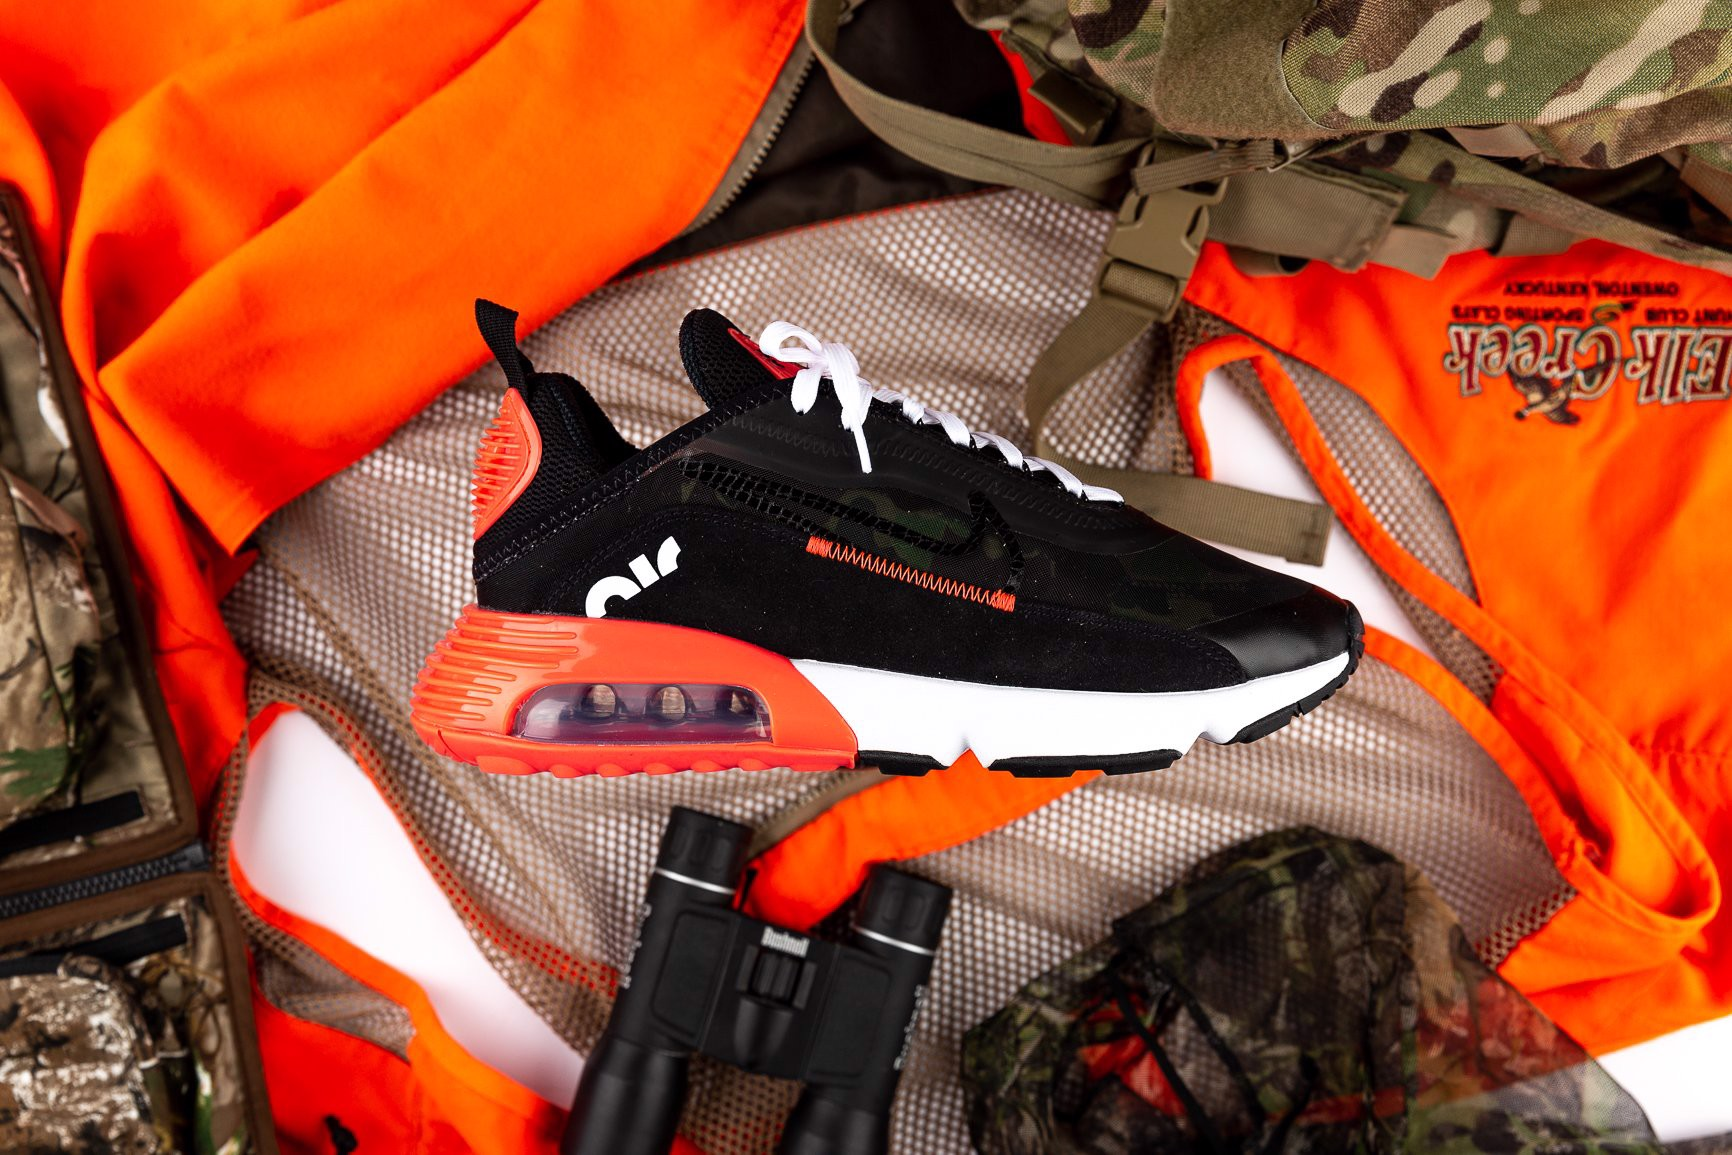 Nike Air Max 2090 'Infrared Duck Camo' CU9174-600